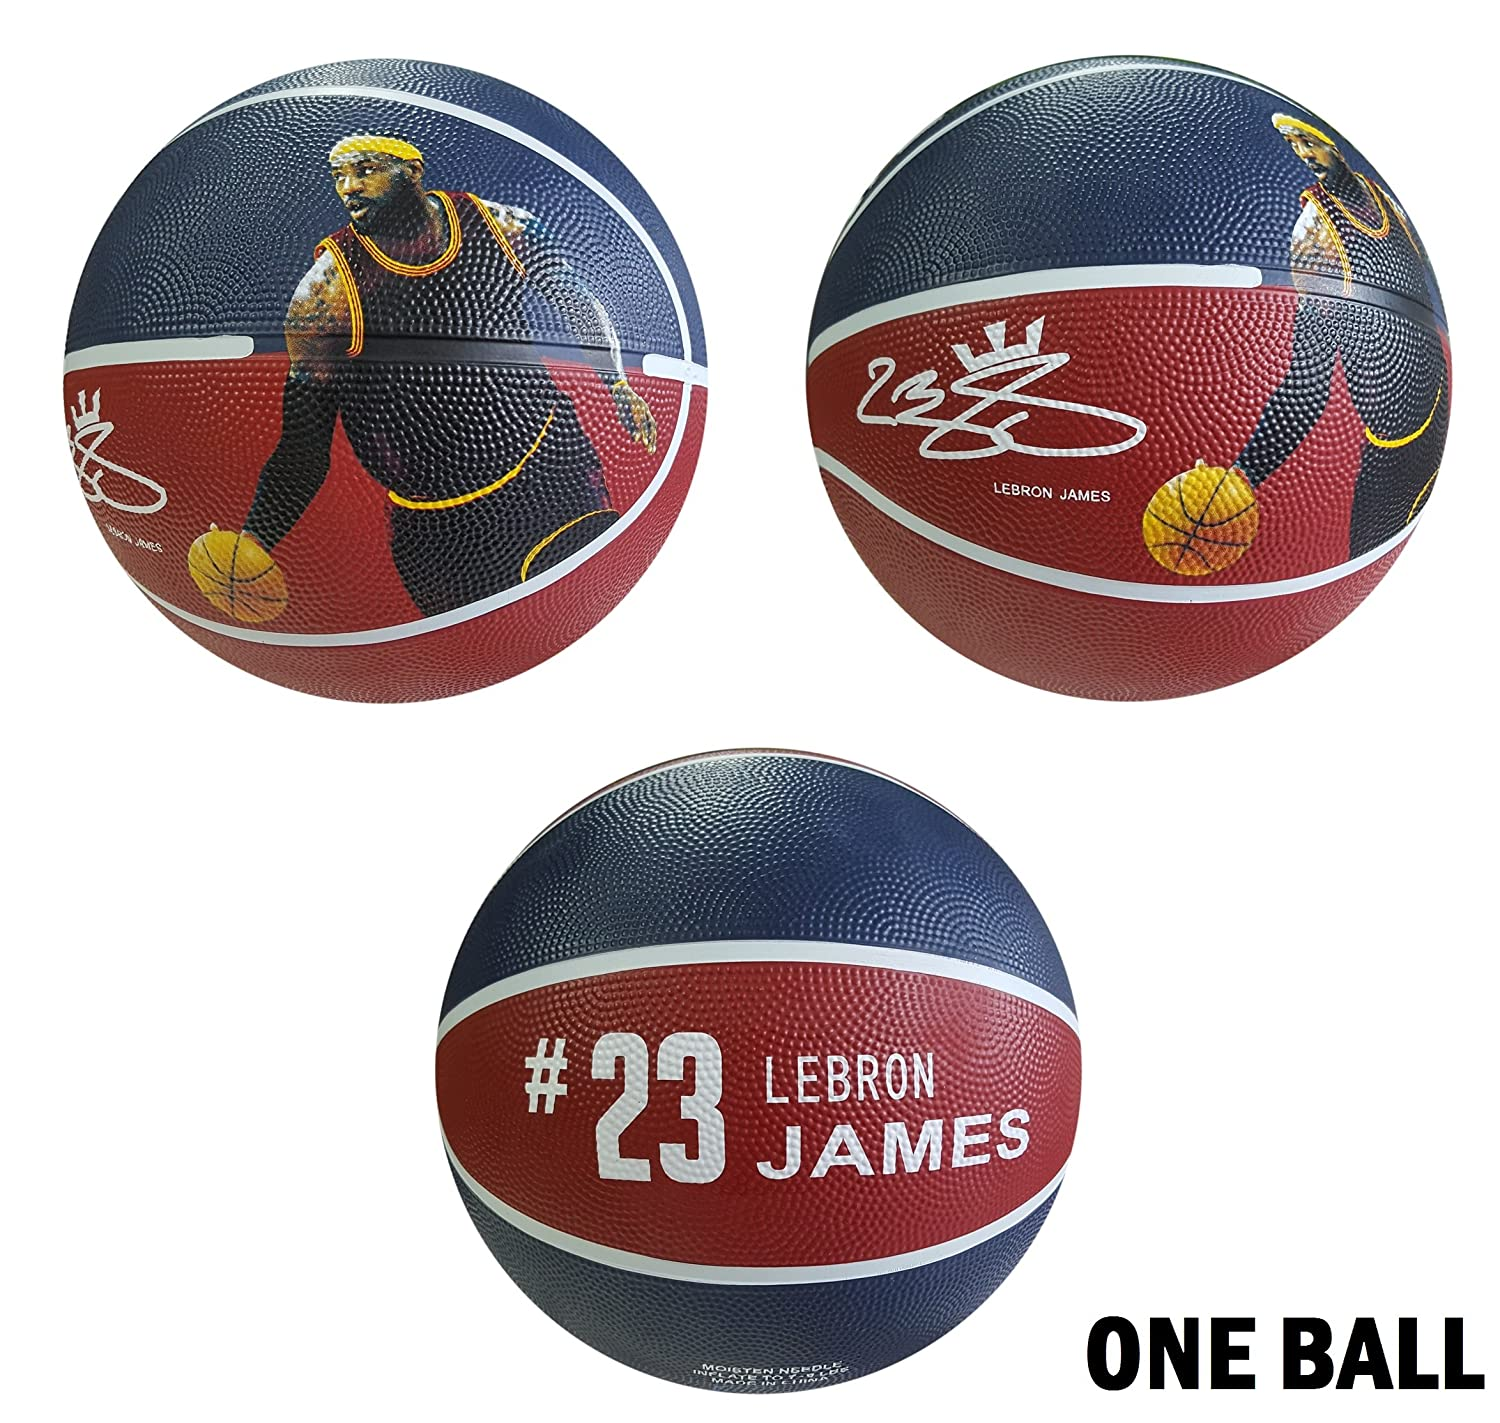 iSport Gifts James Basketball ✓ Size 5 for Kids Adult ✓ Premium Gift Lebron Basketball ✓ Unique Design ✓ Durable Soft Construction